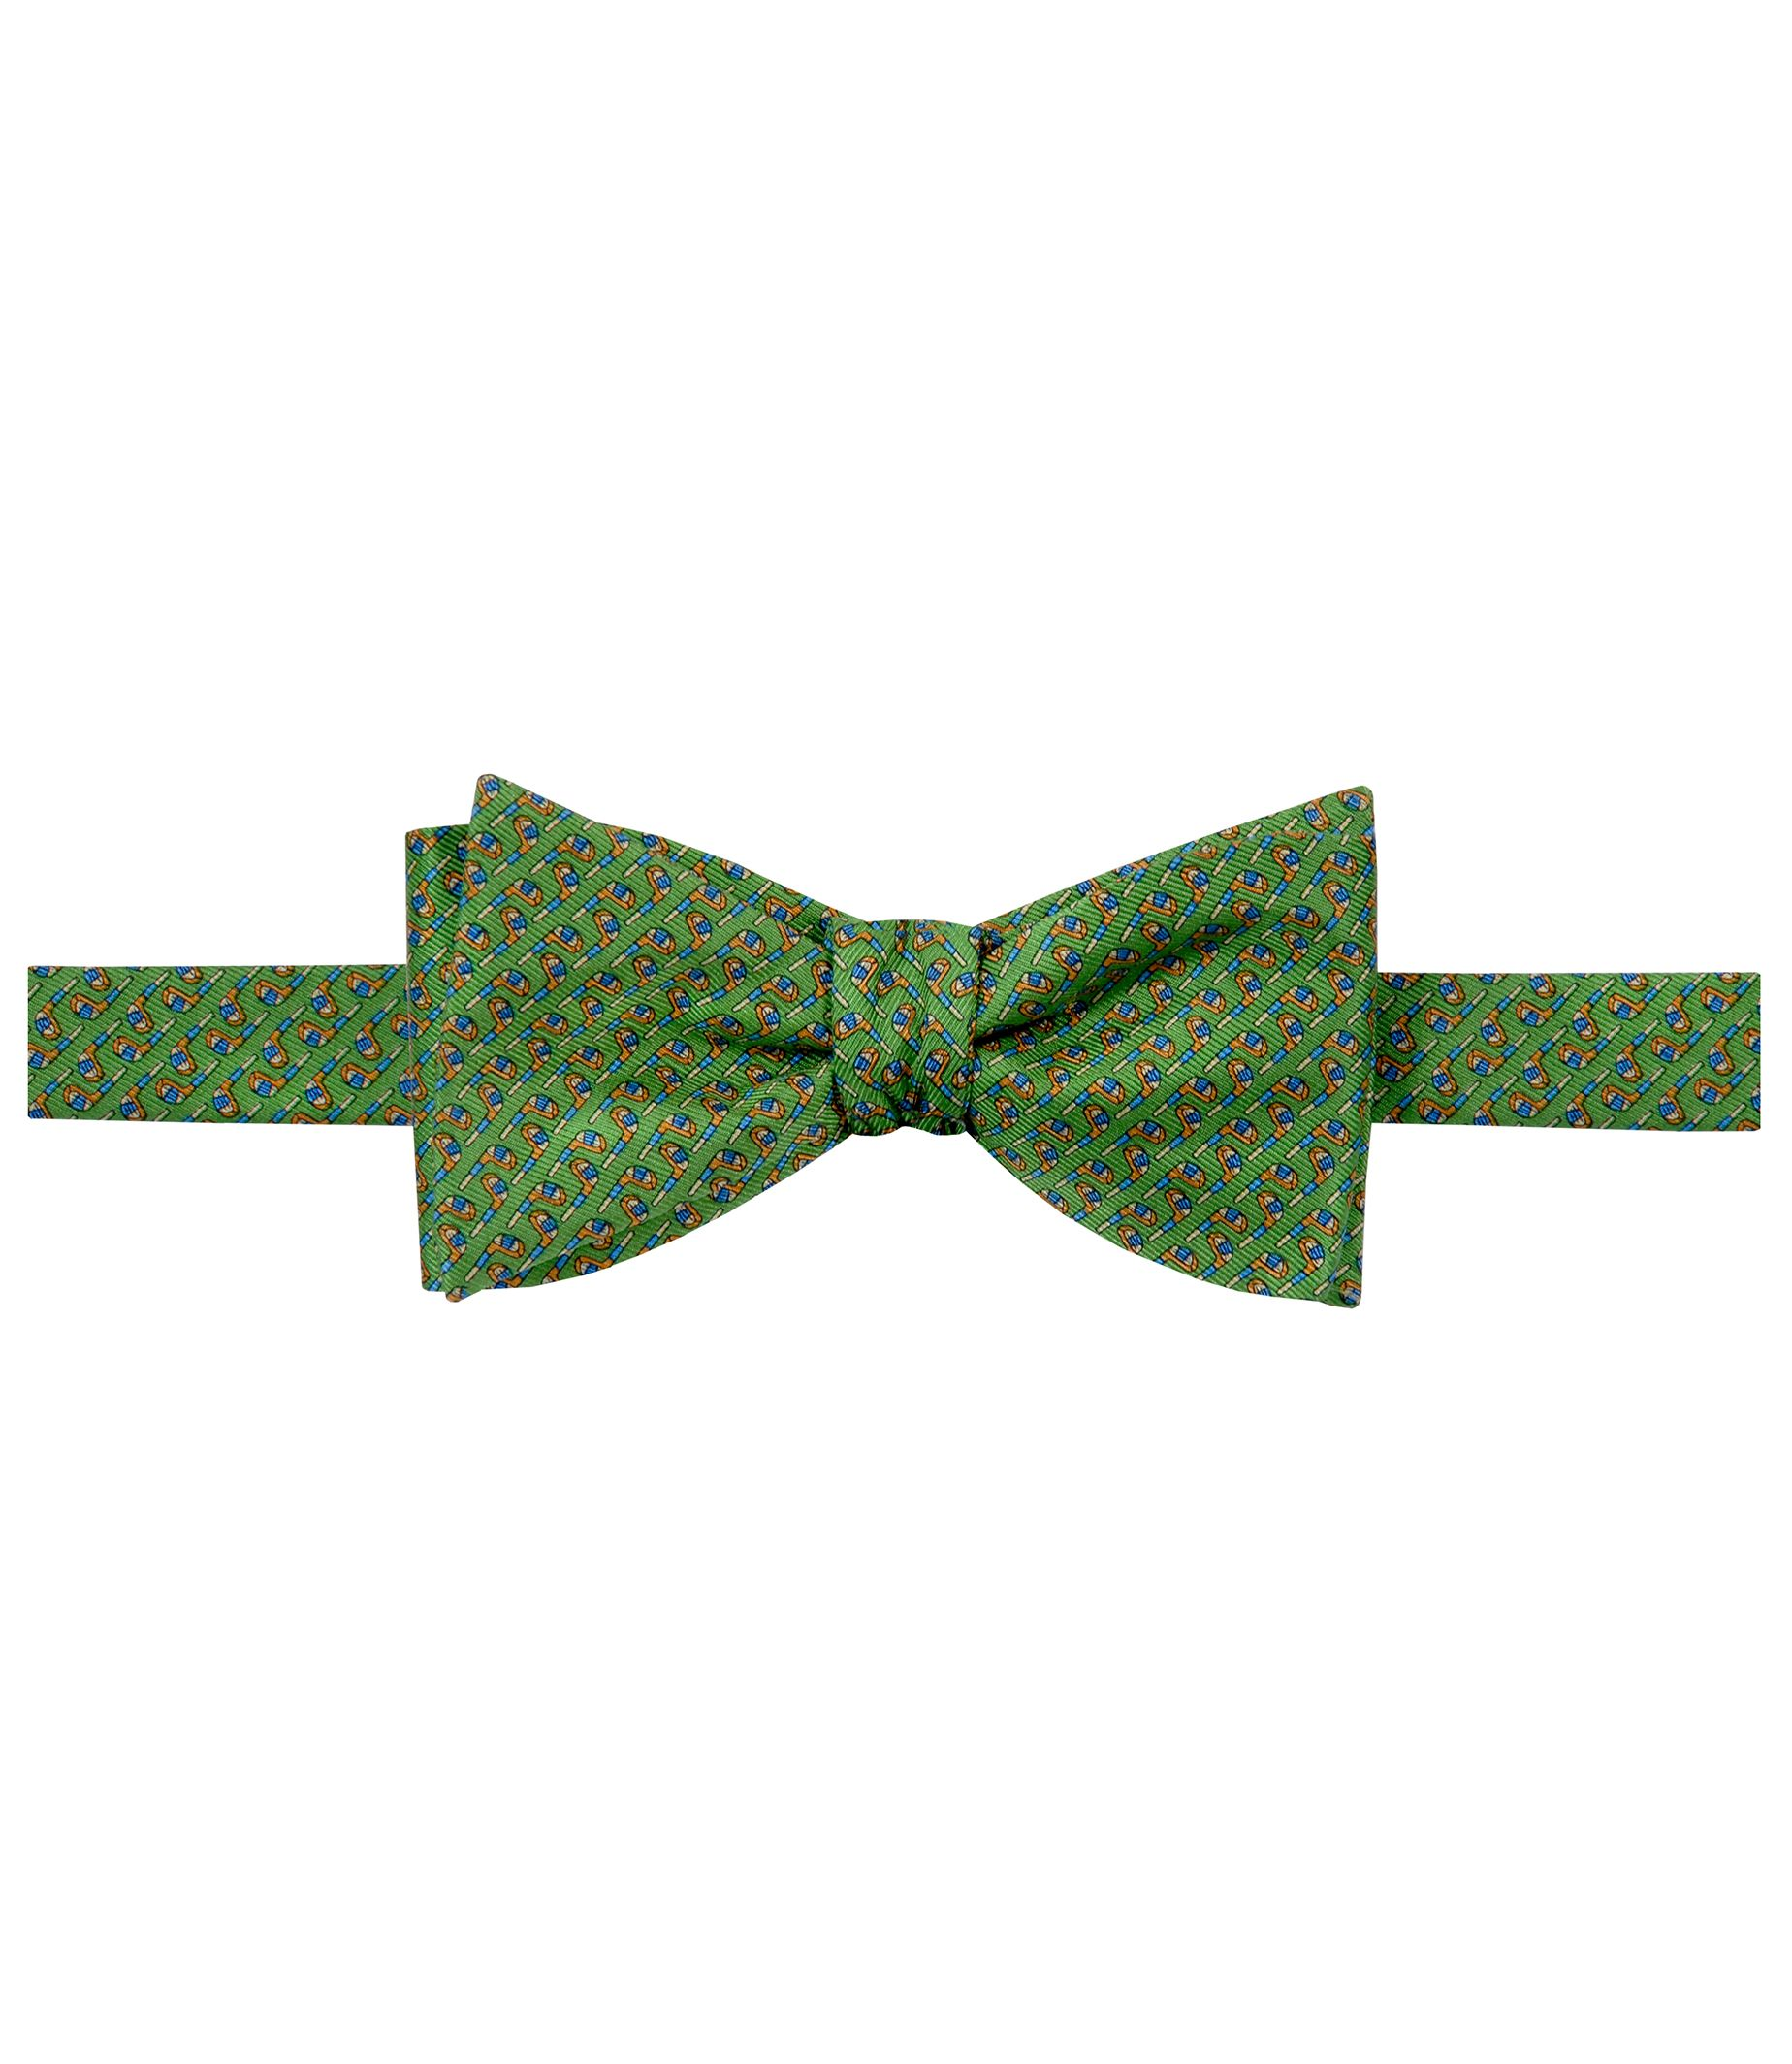 Executive Golf Clubs Bowtie